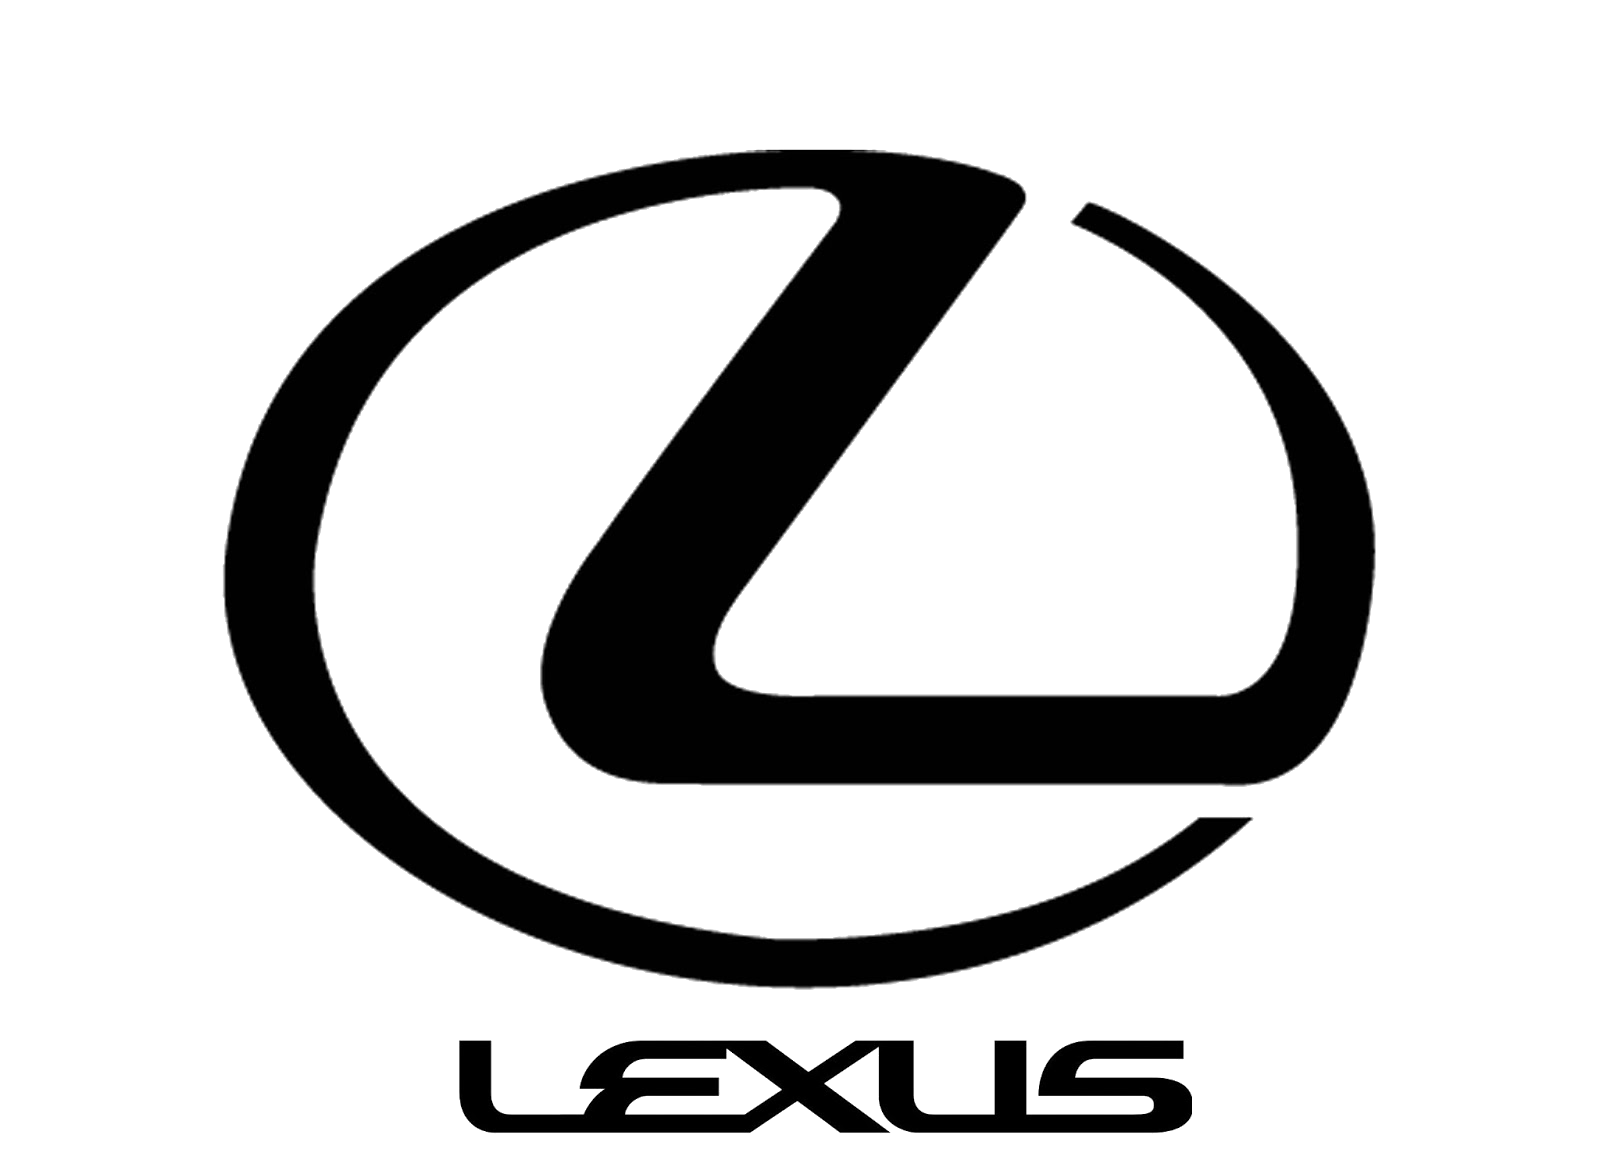 Lexus Logo Lexus Car Symbol Meaning And History Car Oukasfo